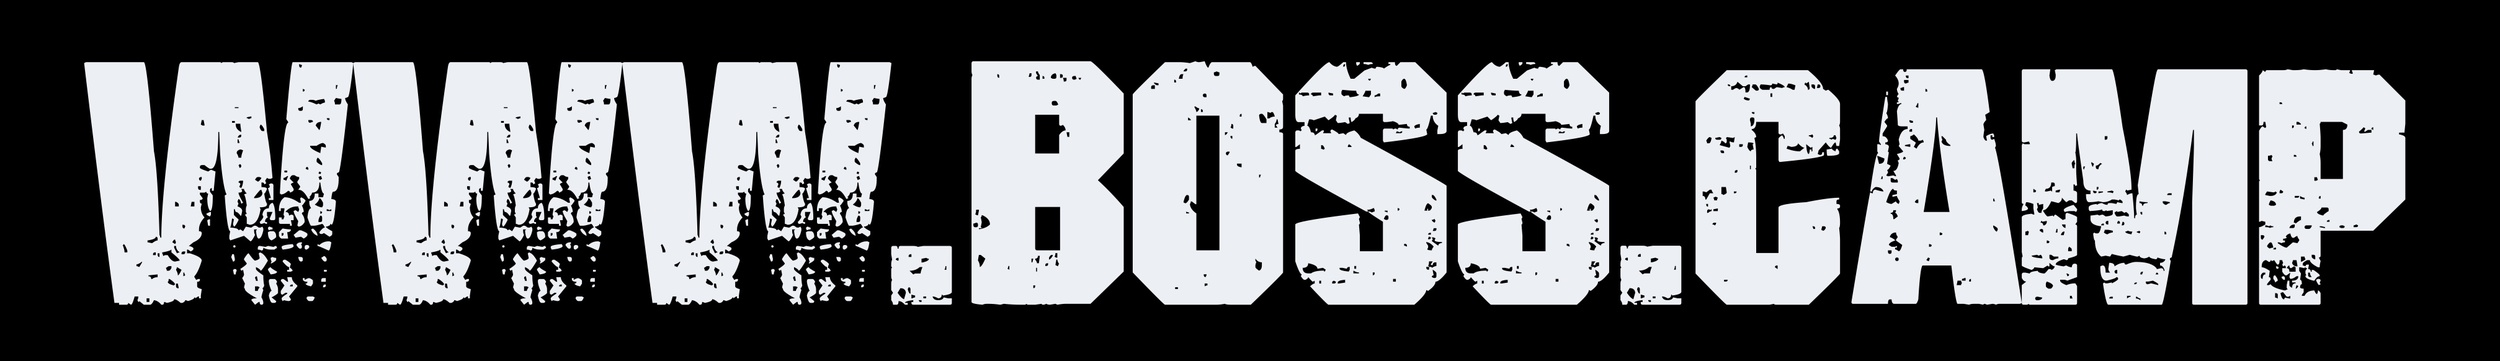 If you're new to management find out what they didn't teach you in school at www.boss.camp Jpeg